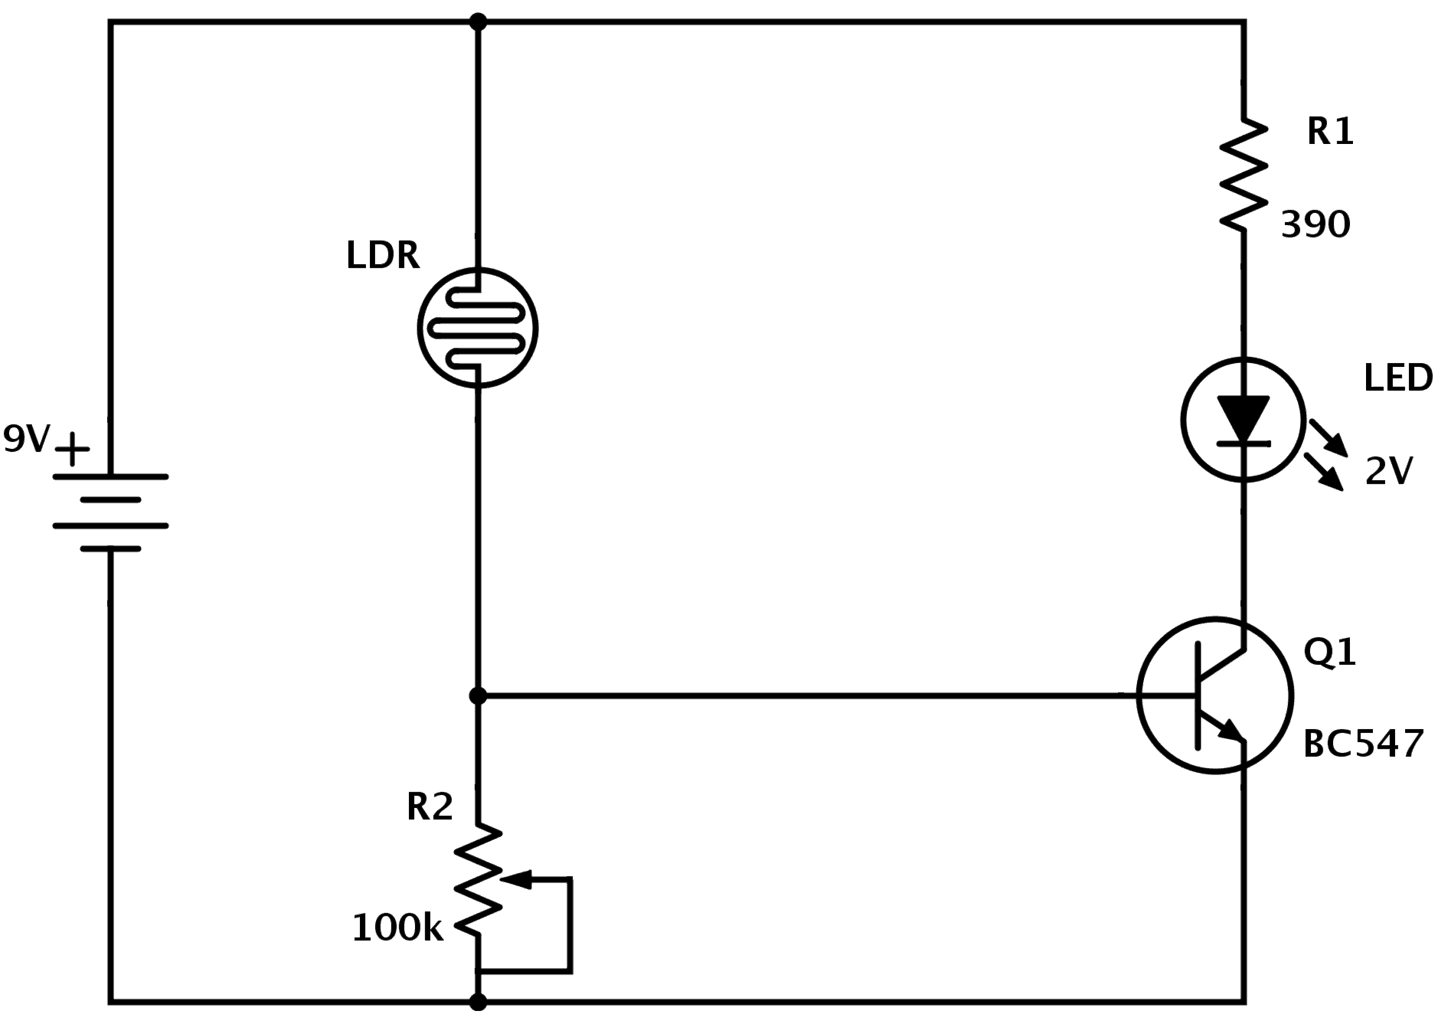 LDR circuit improved circuit diagram how to read and understand any schematic simple circuit diagram at bayanpartner.co